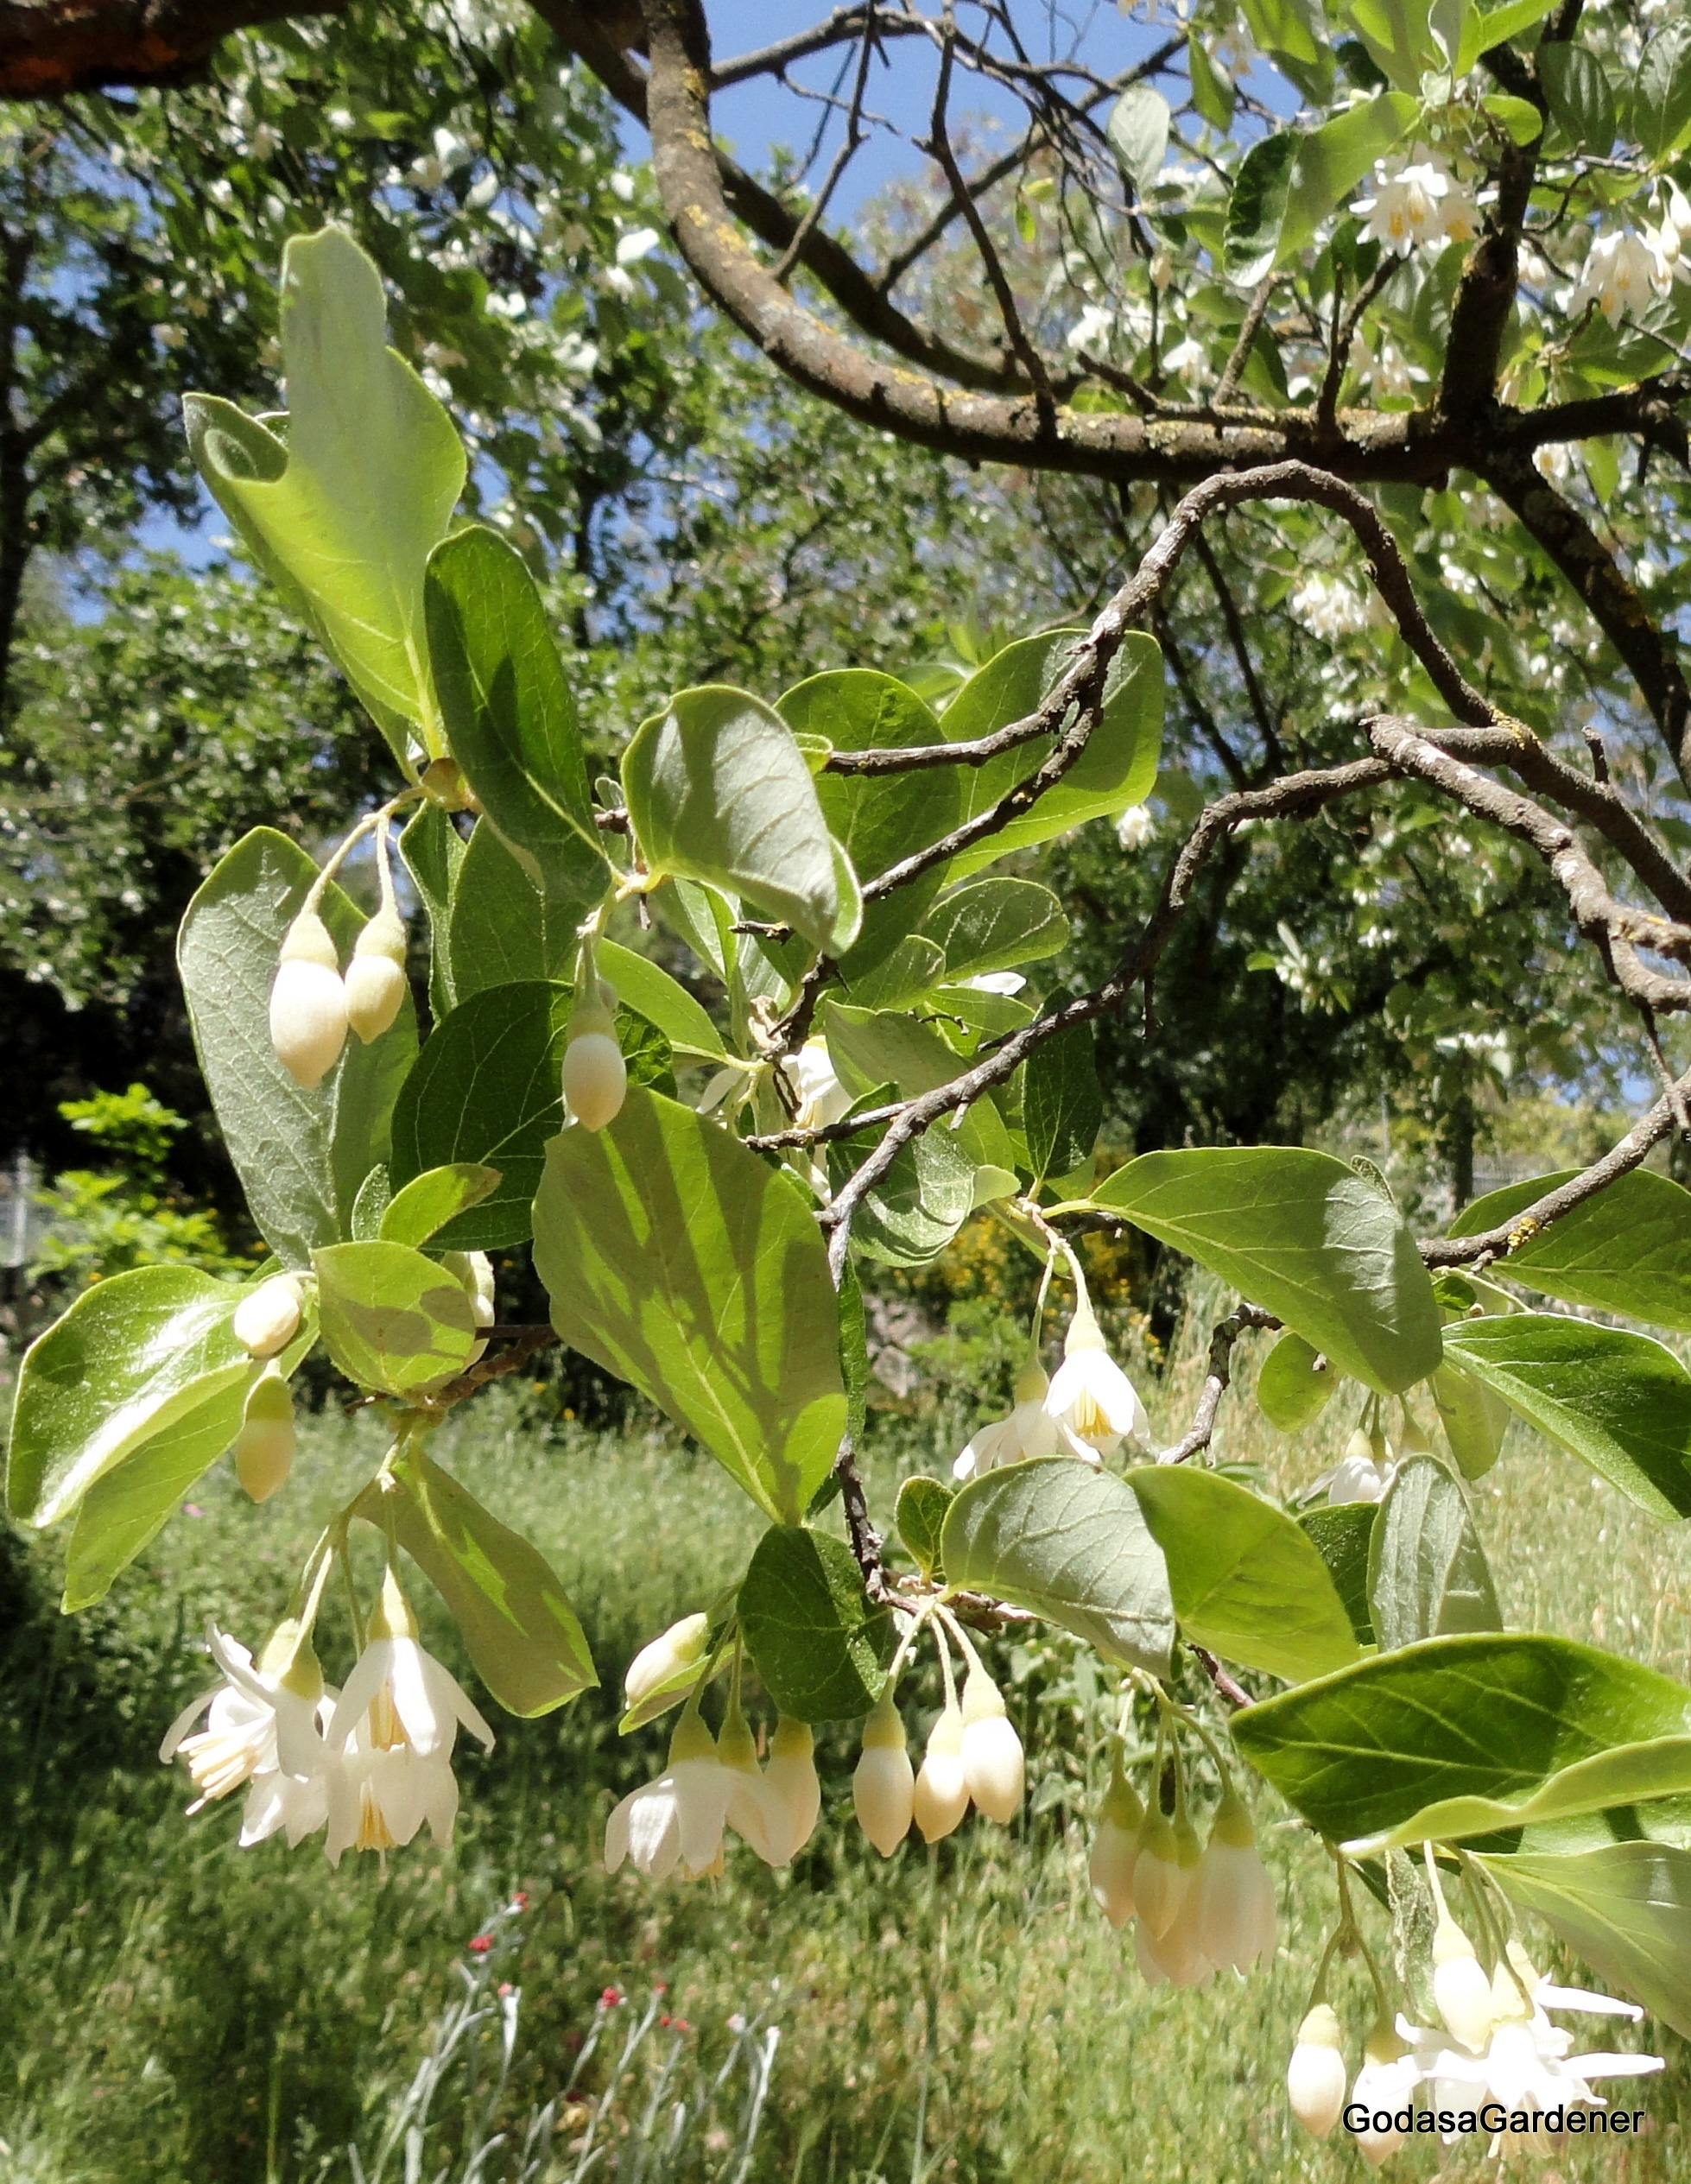 God as a gardener experiencing god through plants styrax officinalis jbg buycottarizona